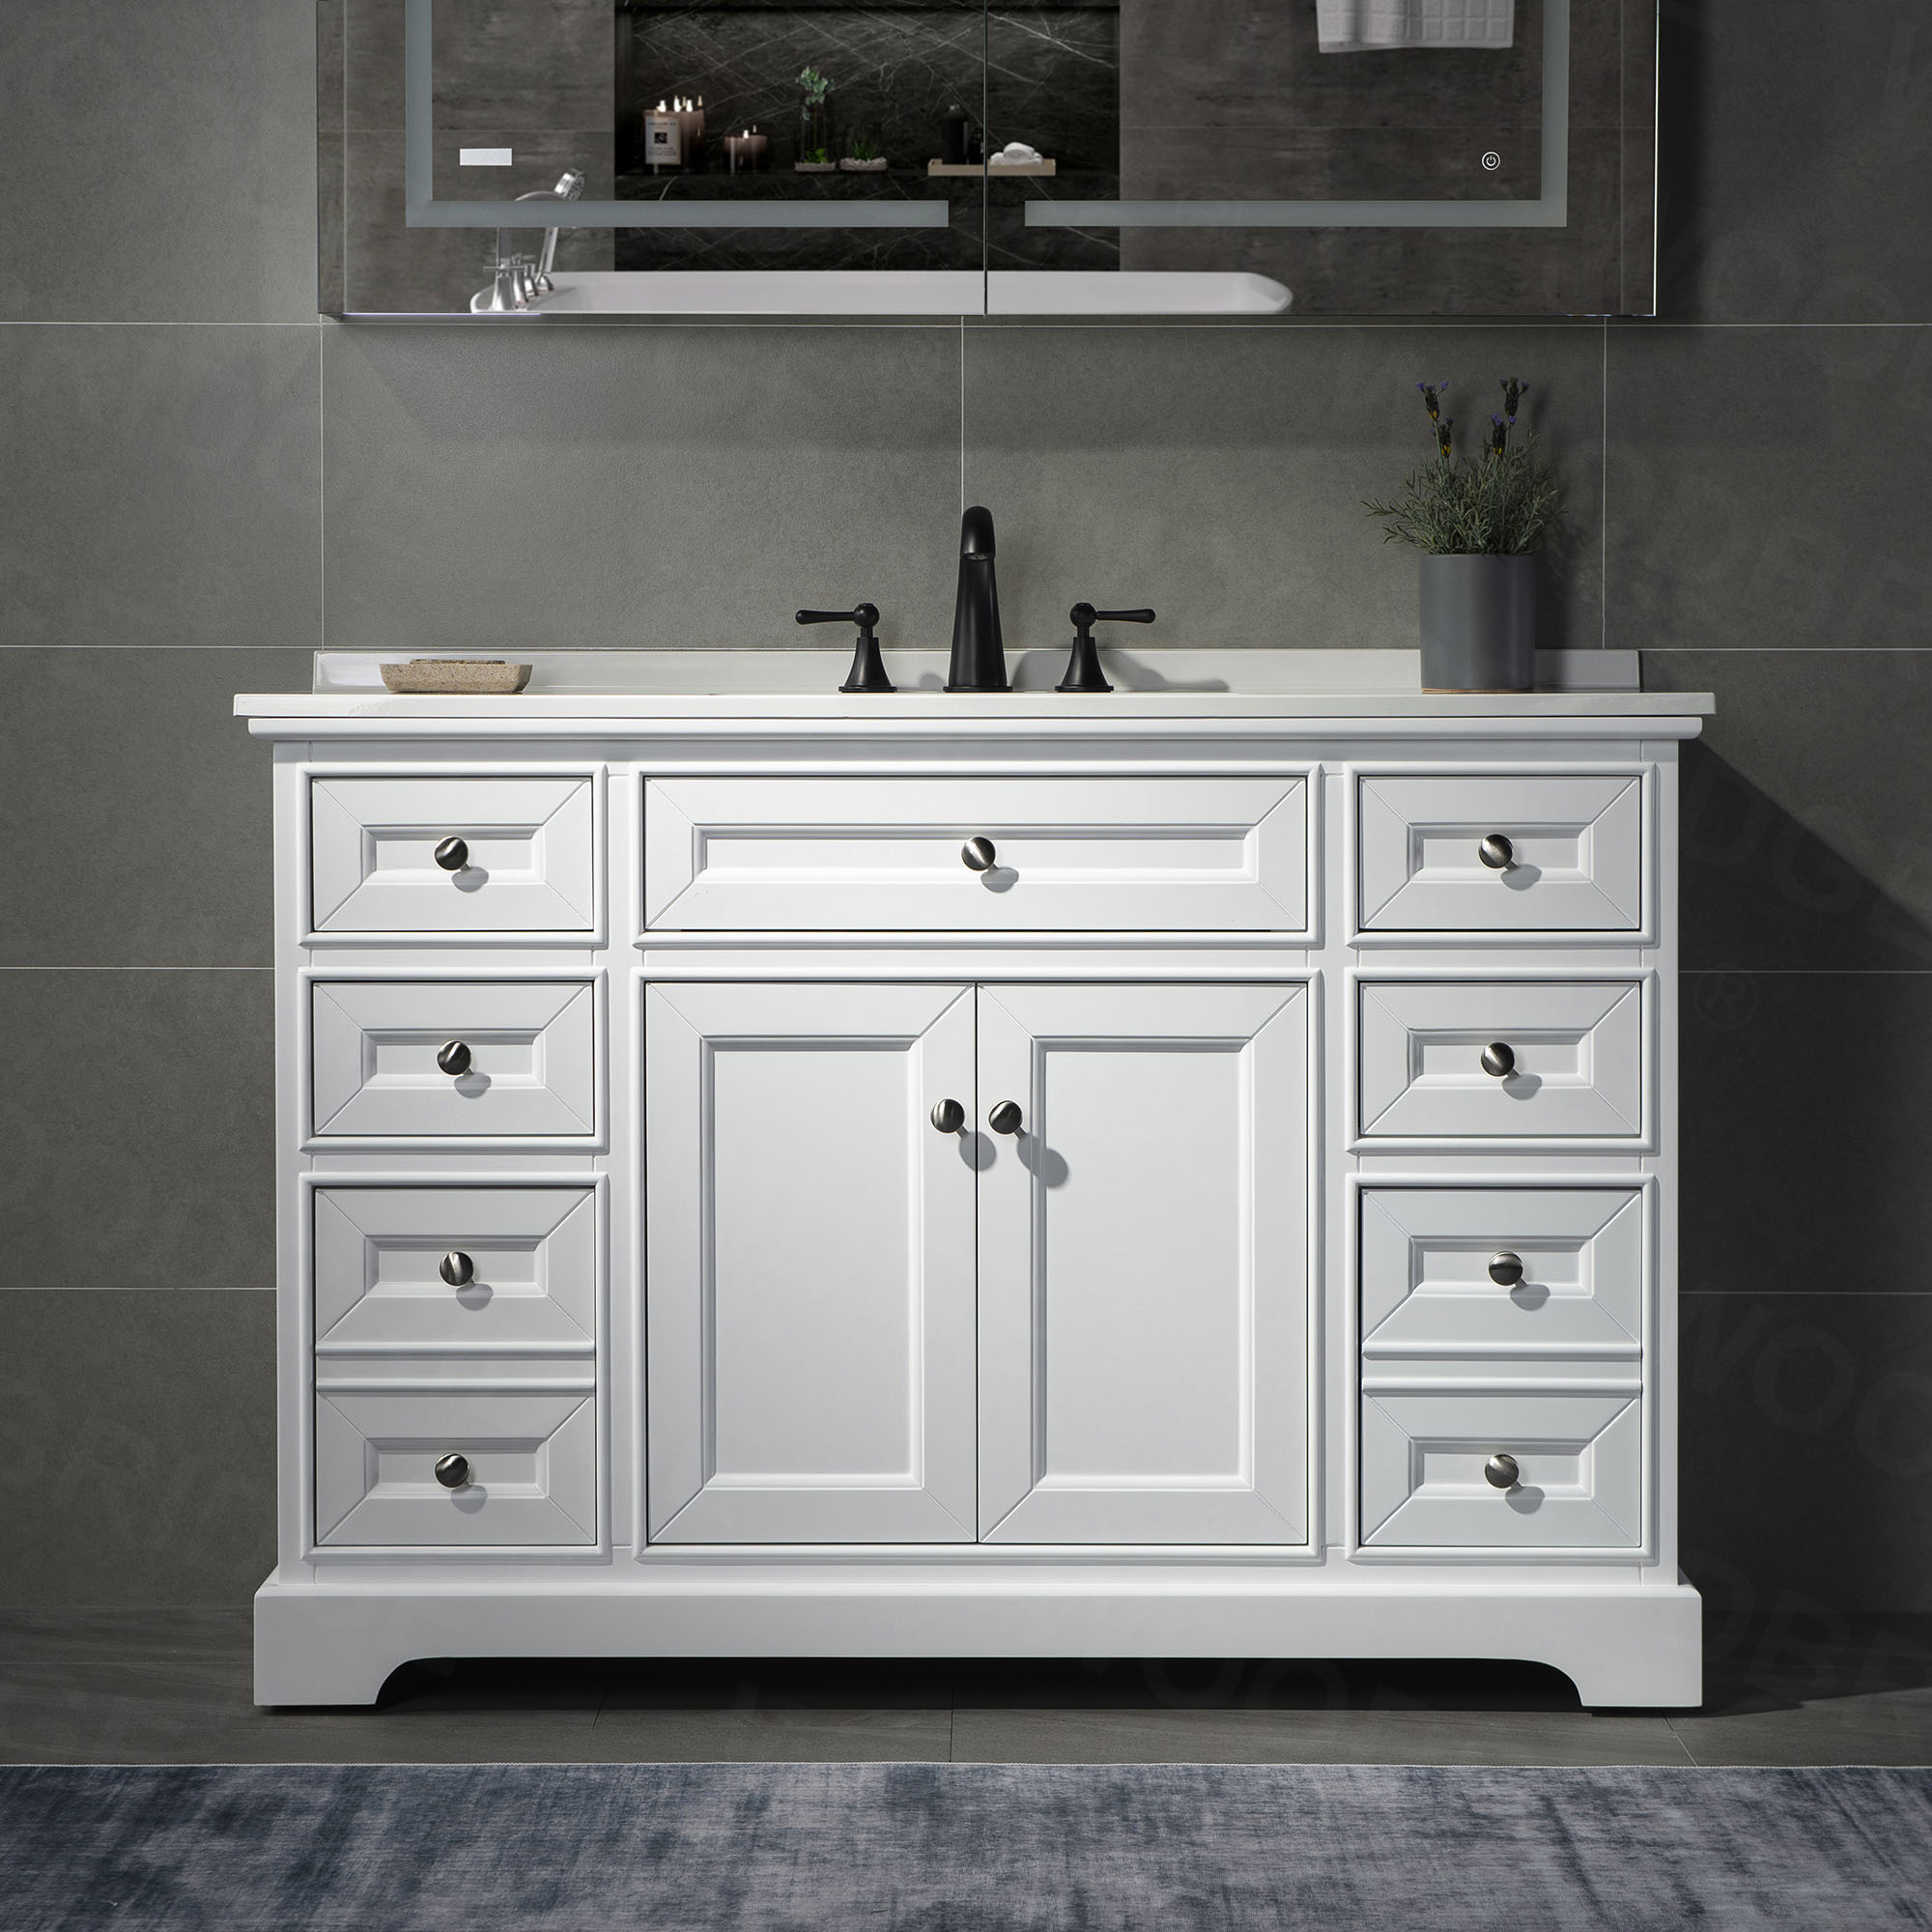 ᐅ London 48 Inch Solid Wood Bathroom Vanity With White Solid Surface Vanity Top 8 Faucet Holes 2 Soft Closing Doors And 6 Full Extension Solid Wood Dovetail Drawers White Vanity Color Woodbridge